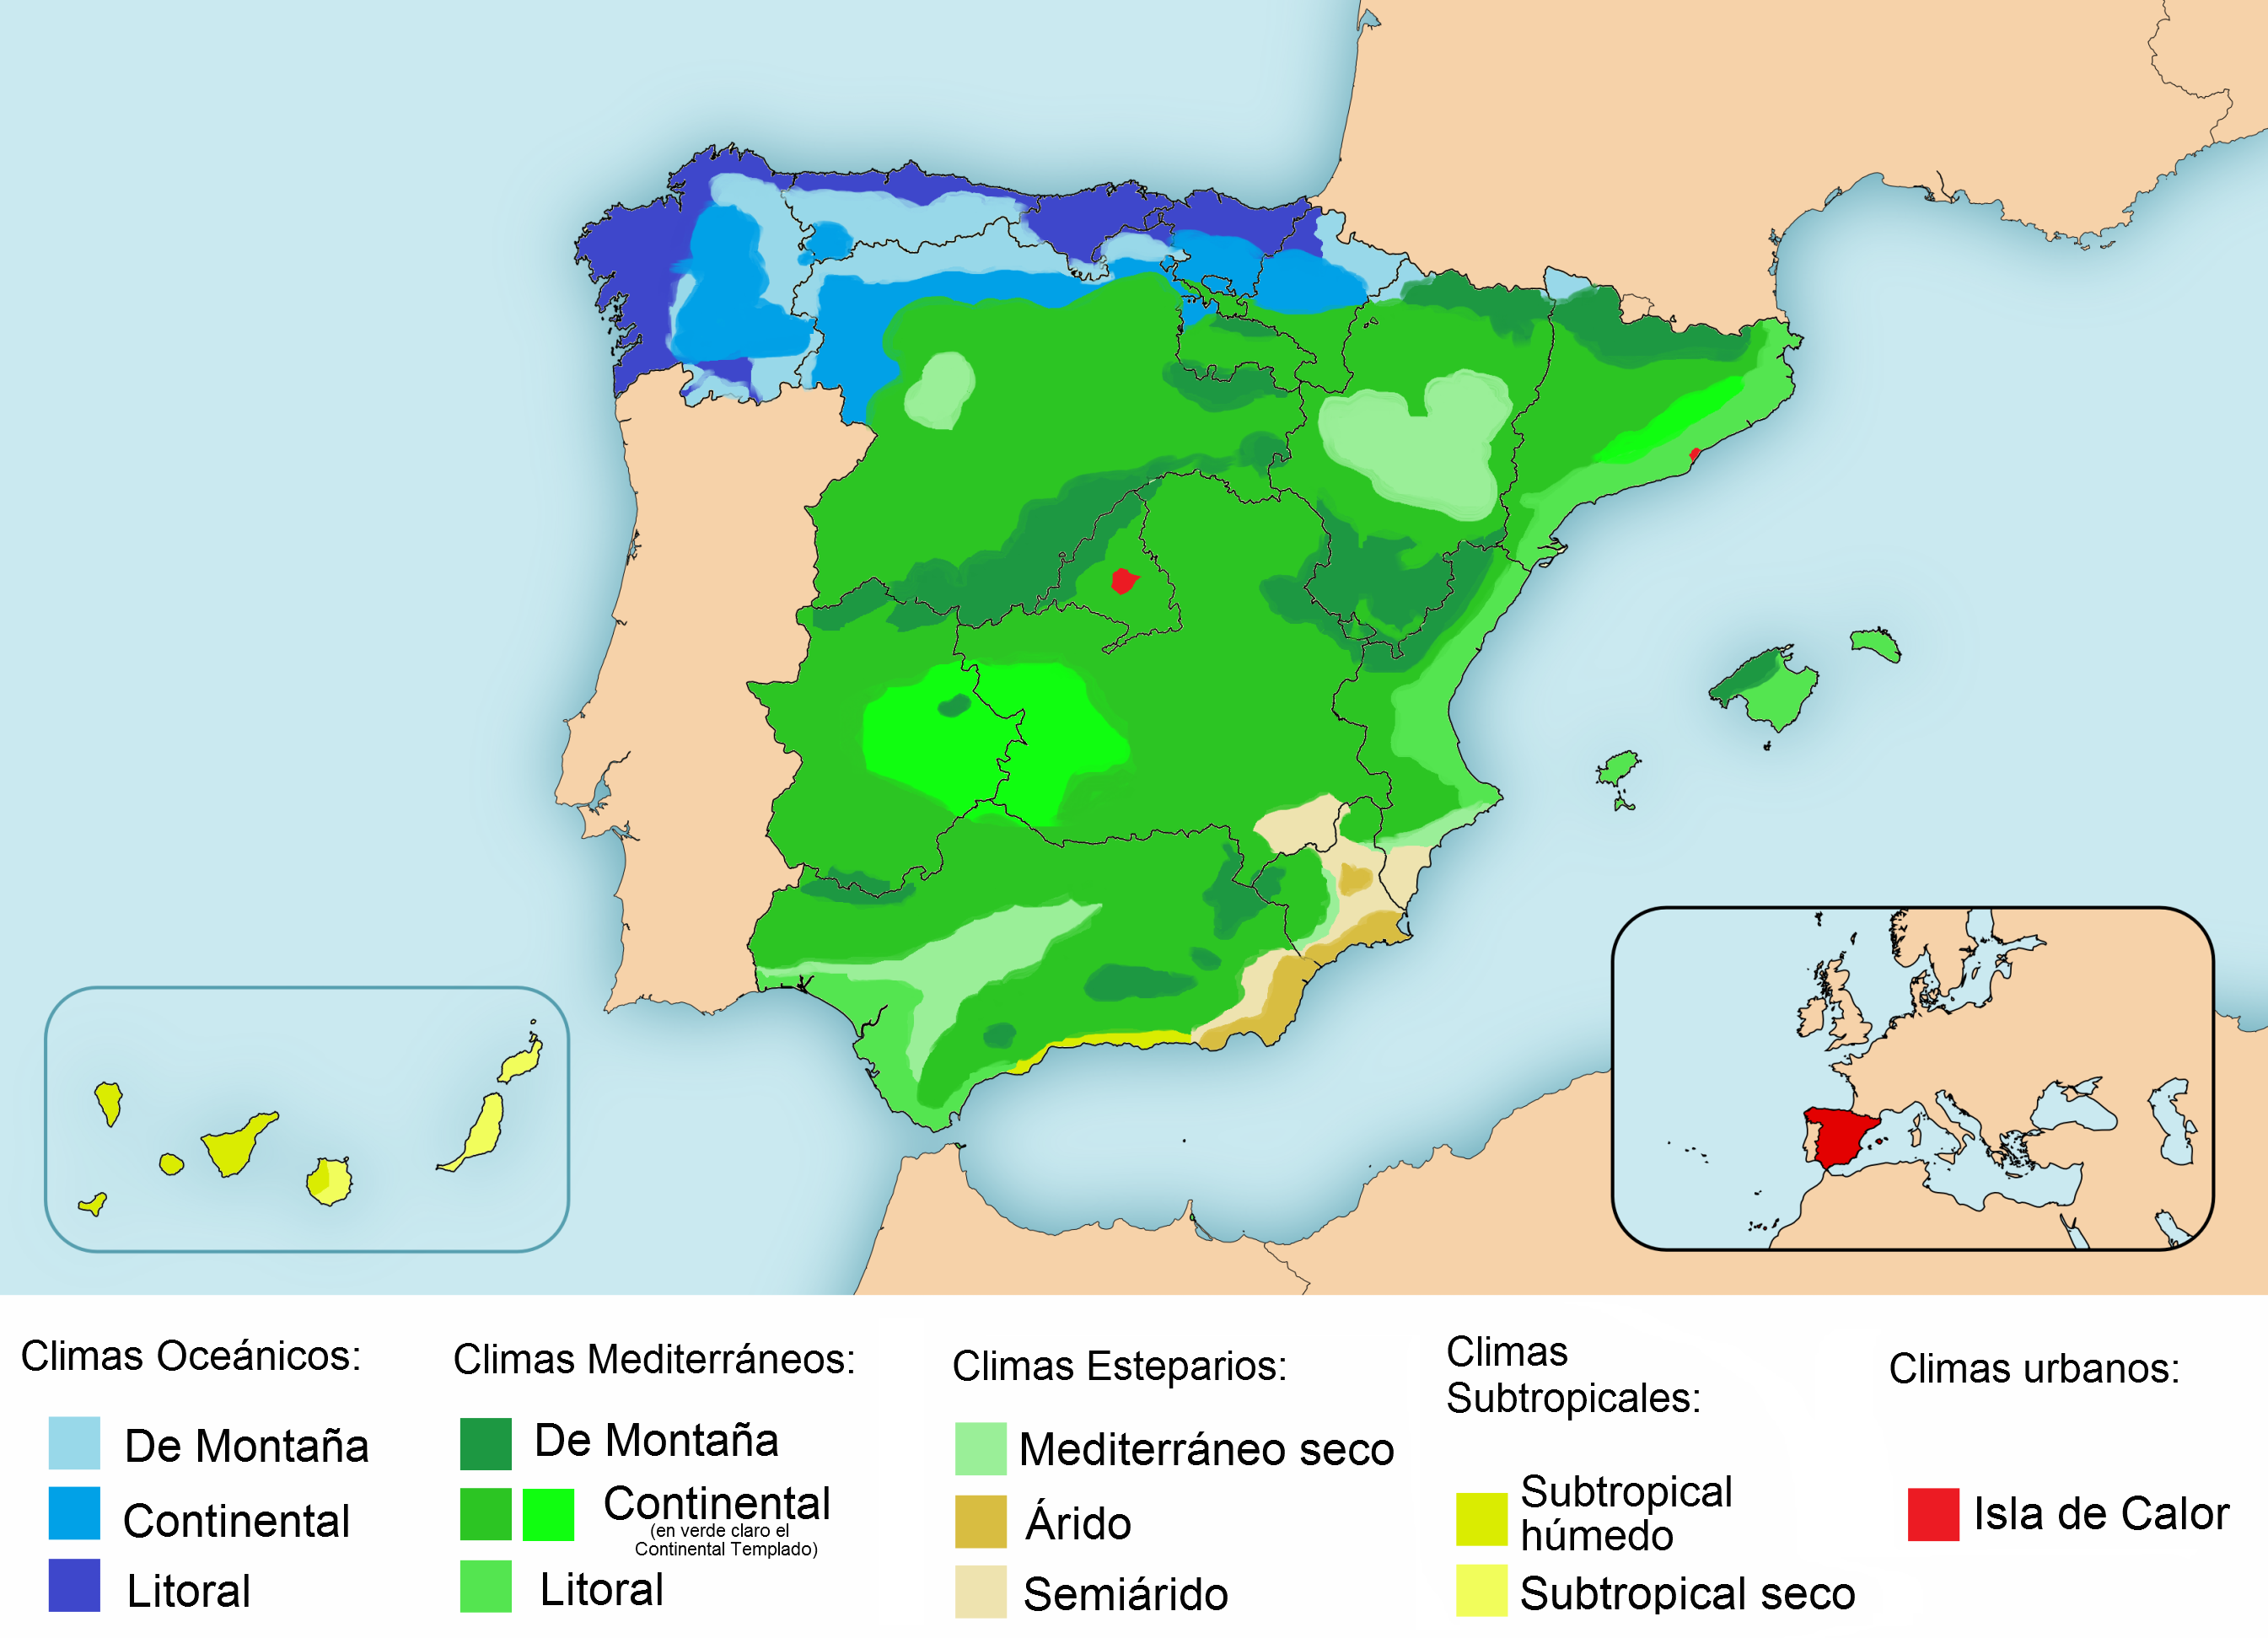 Spain's climate